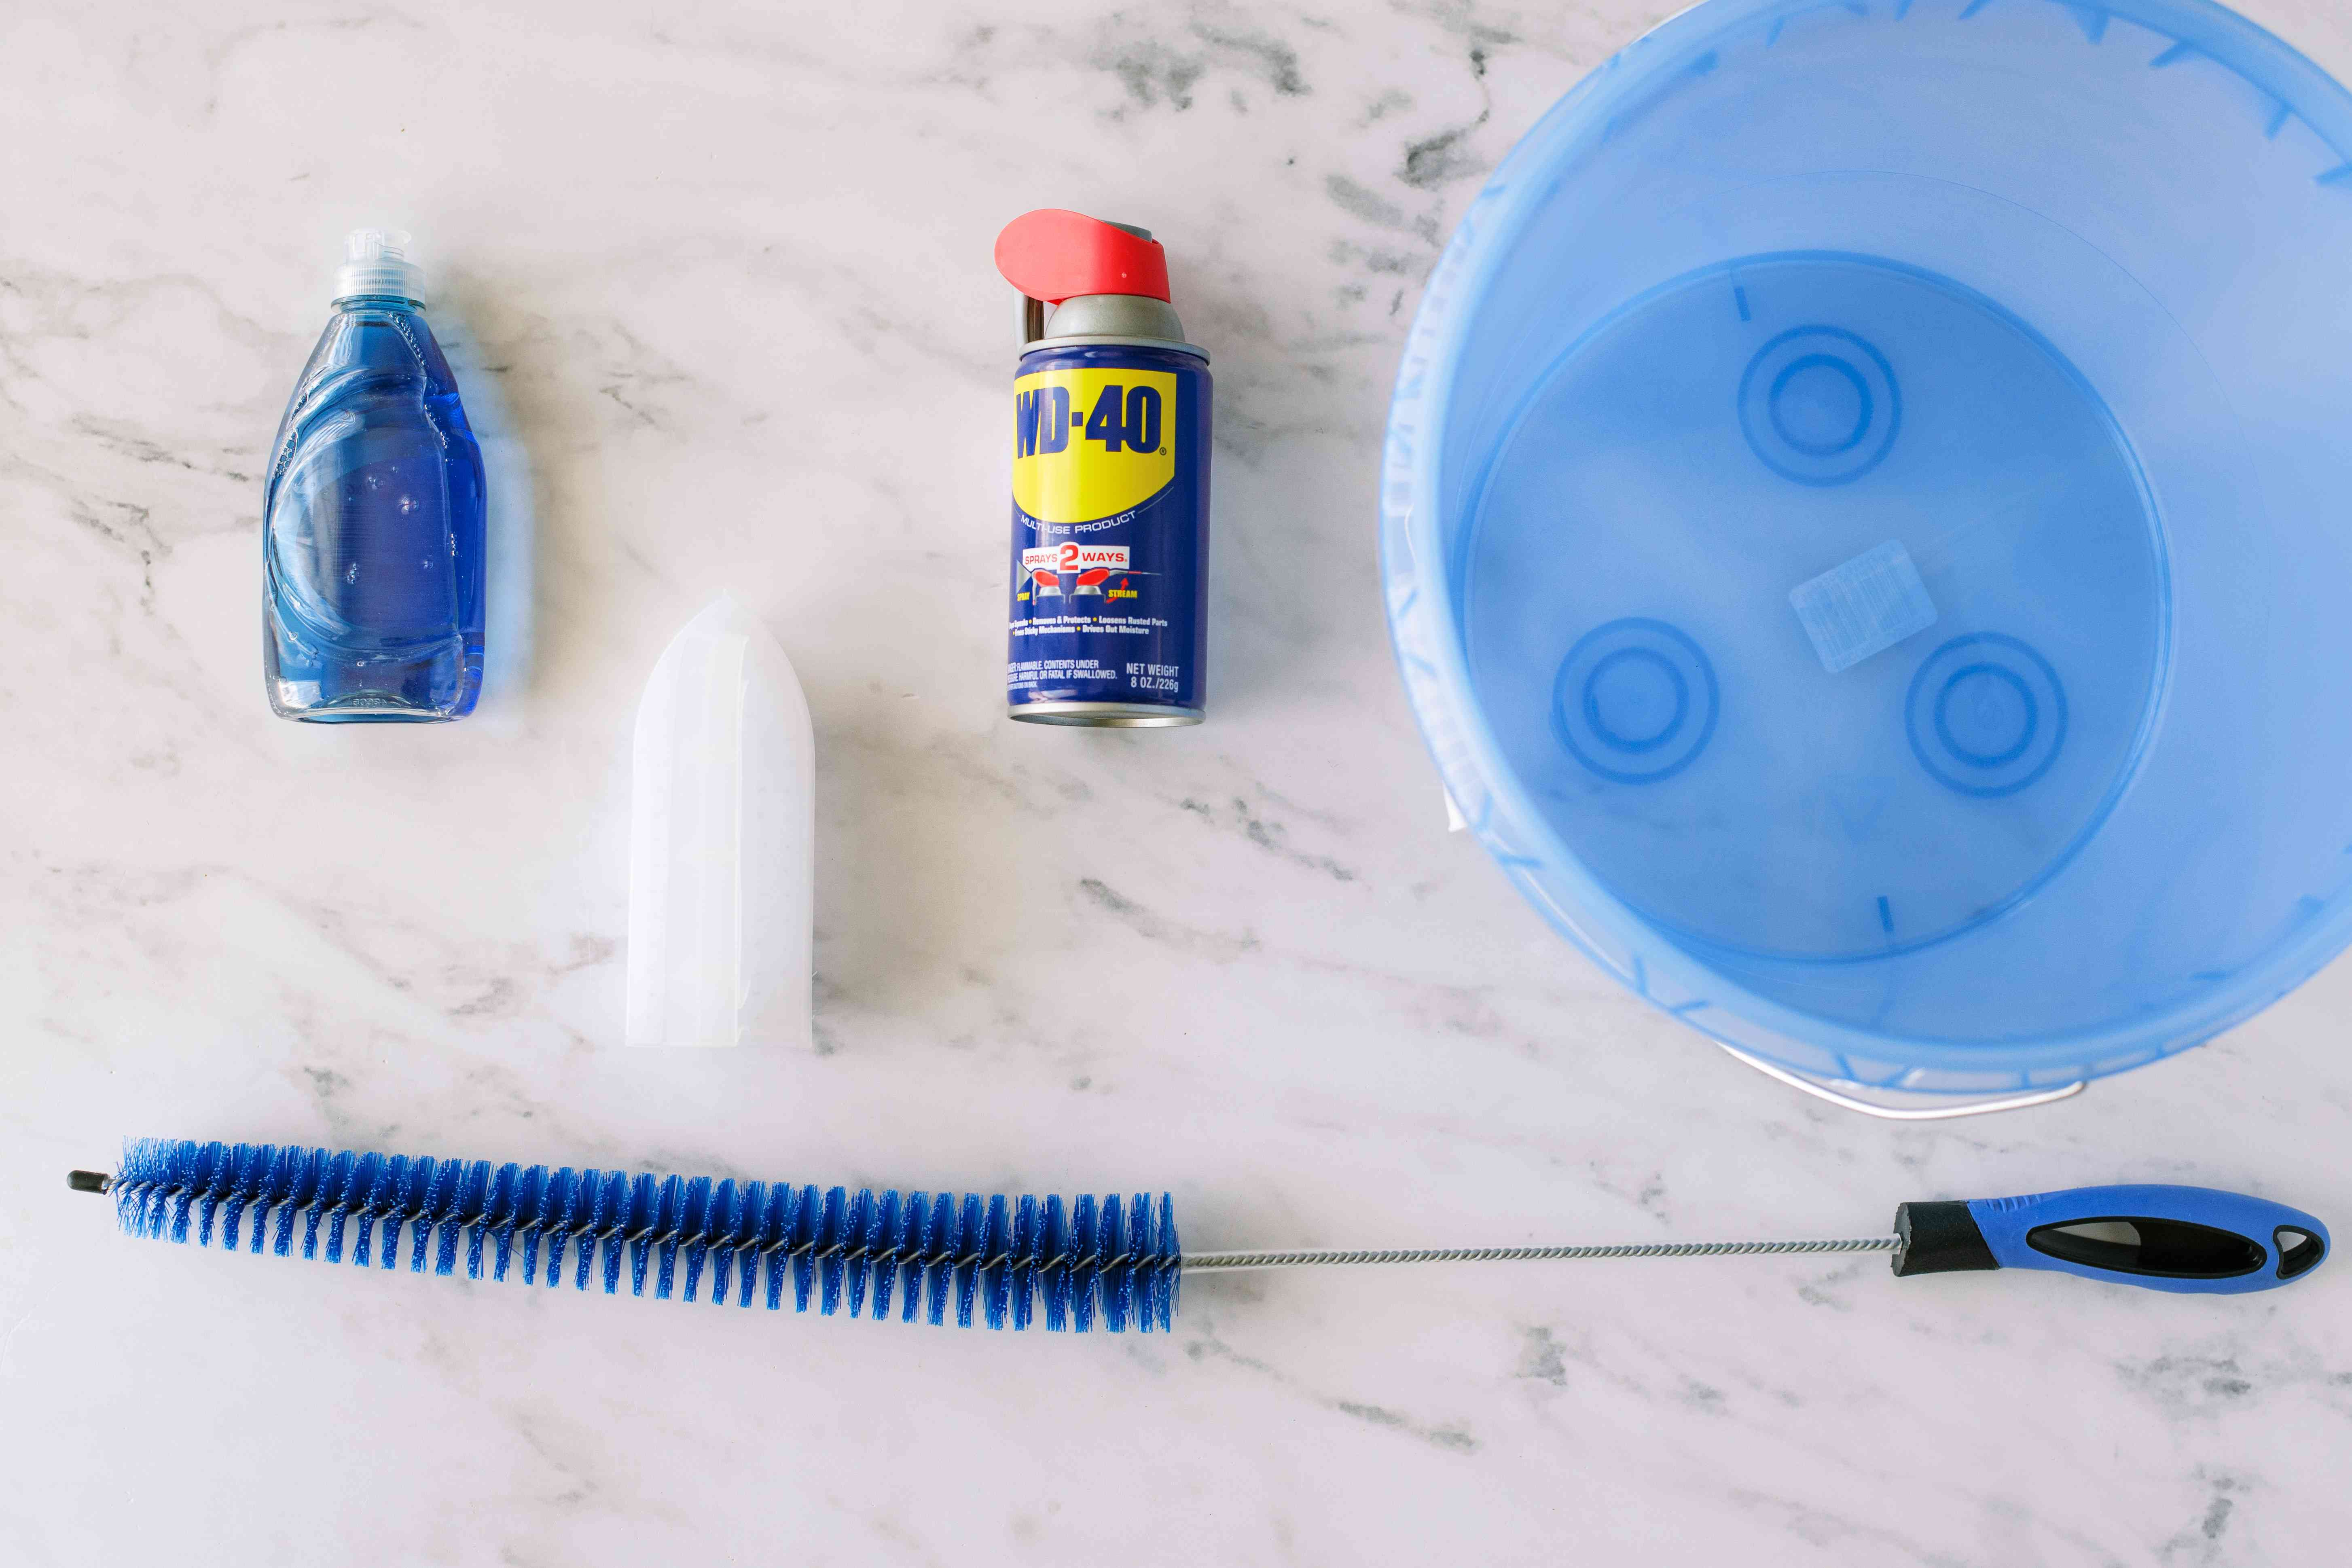 Materials and tools to clean an outside dryer vent